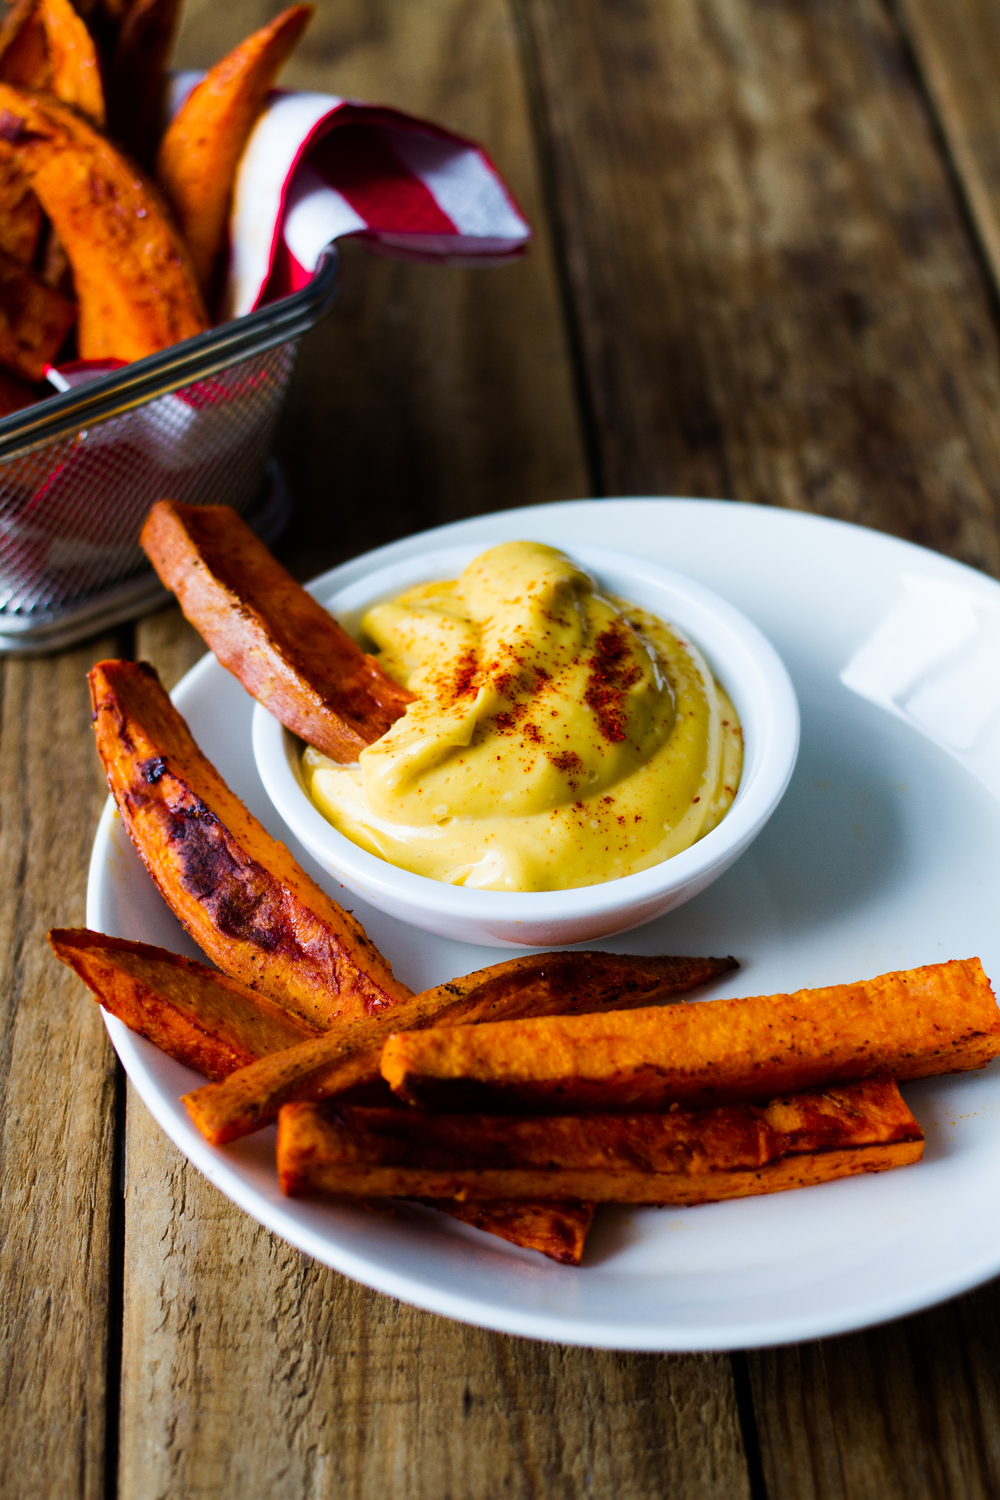 roasted sweet potatoe wedges with sea buckthorn camelina mayo